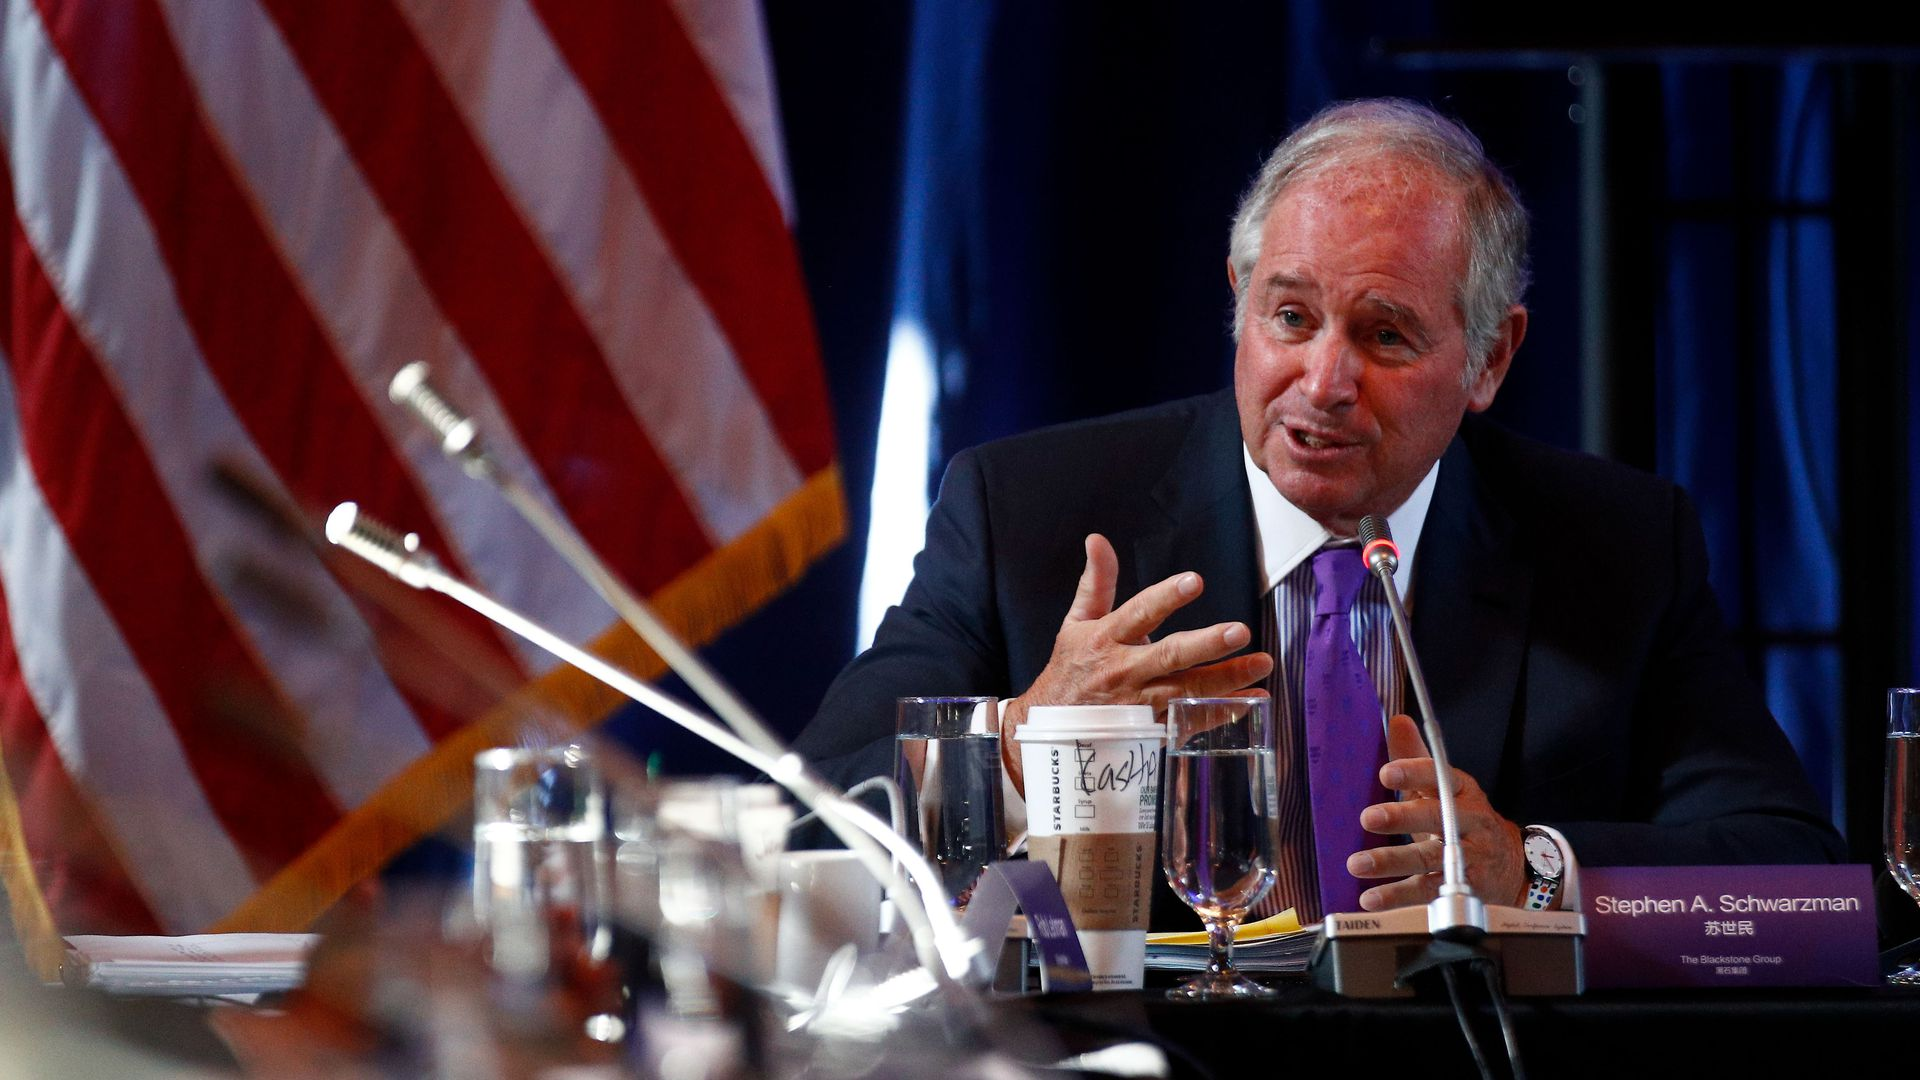 Blackstone Group CEO Steve Schwarzman